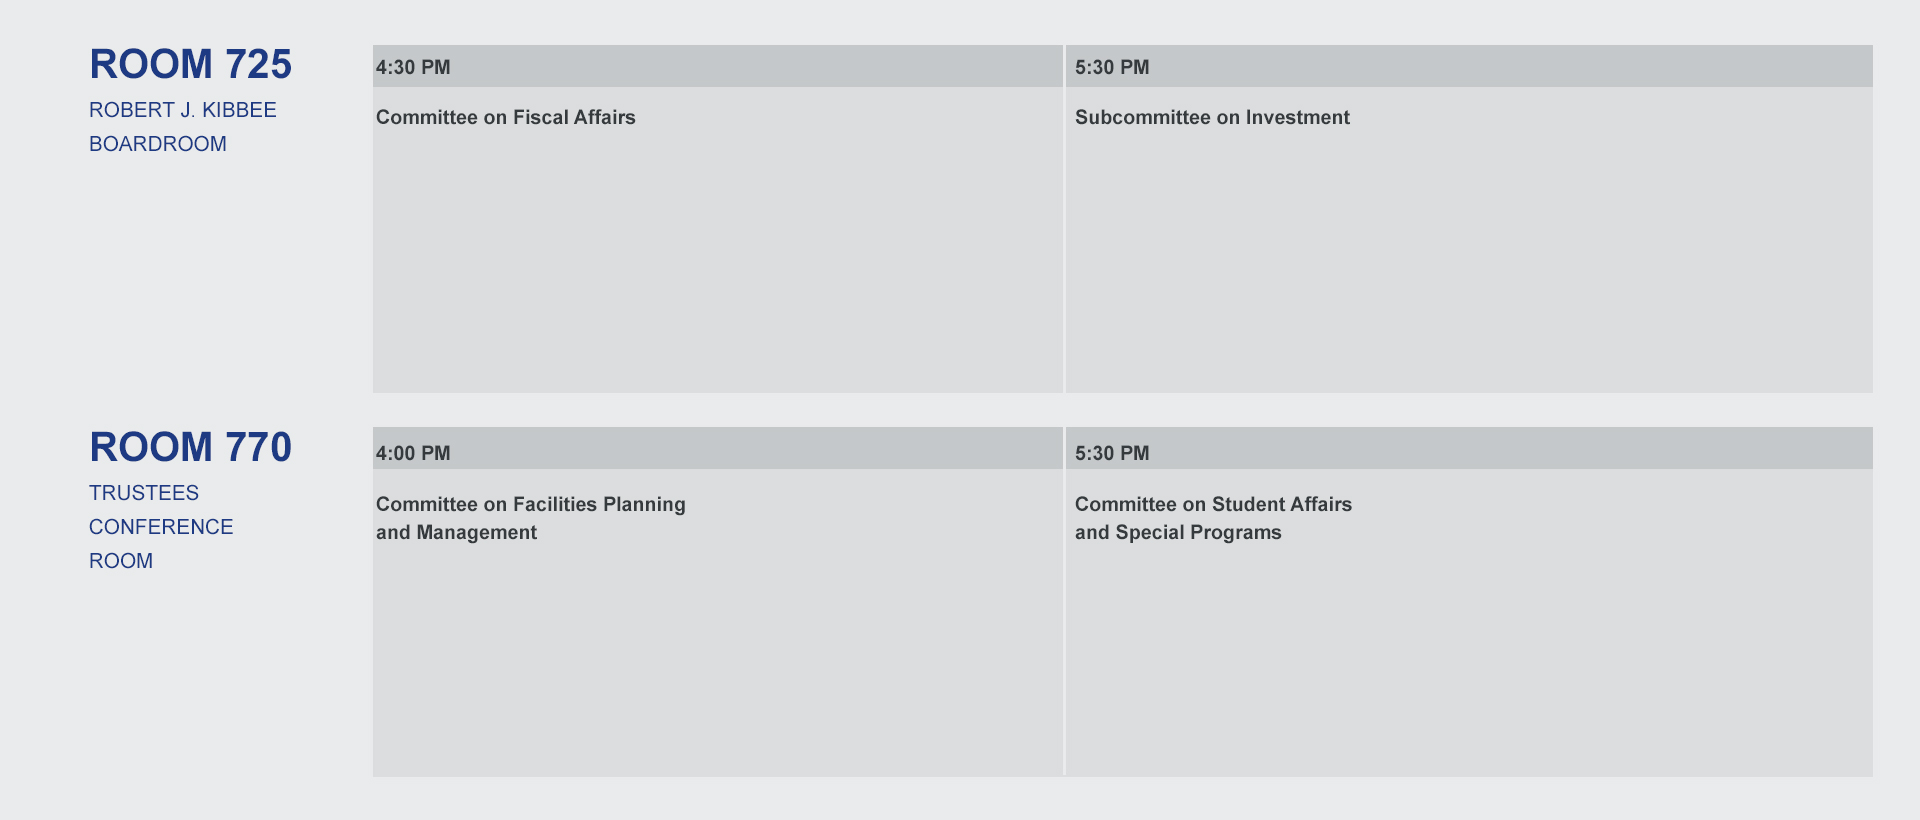 Template for Trustee Conference schedule